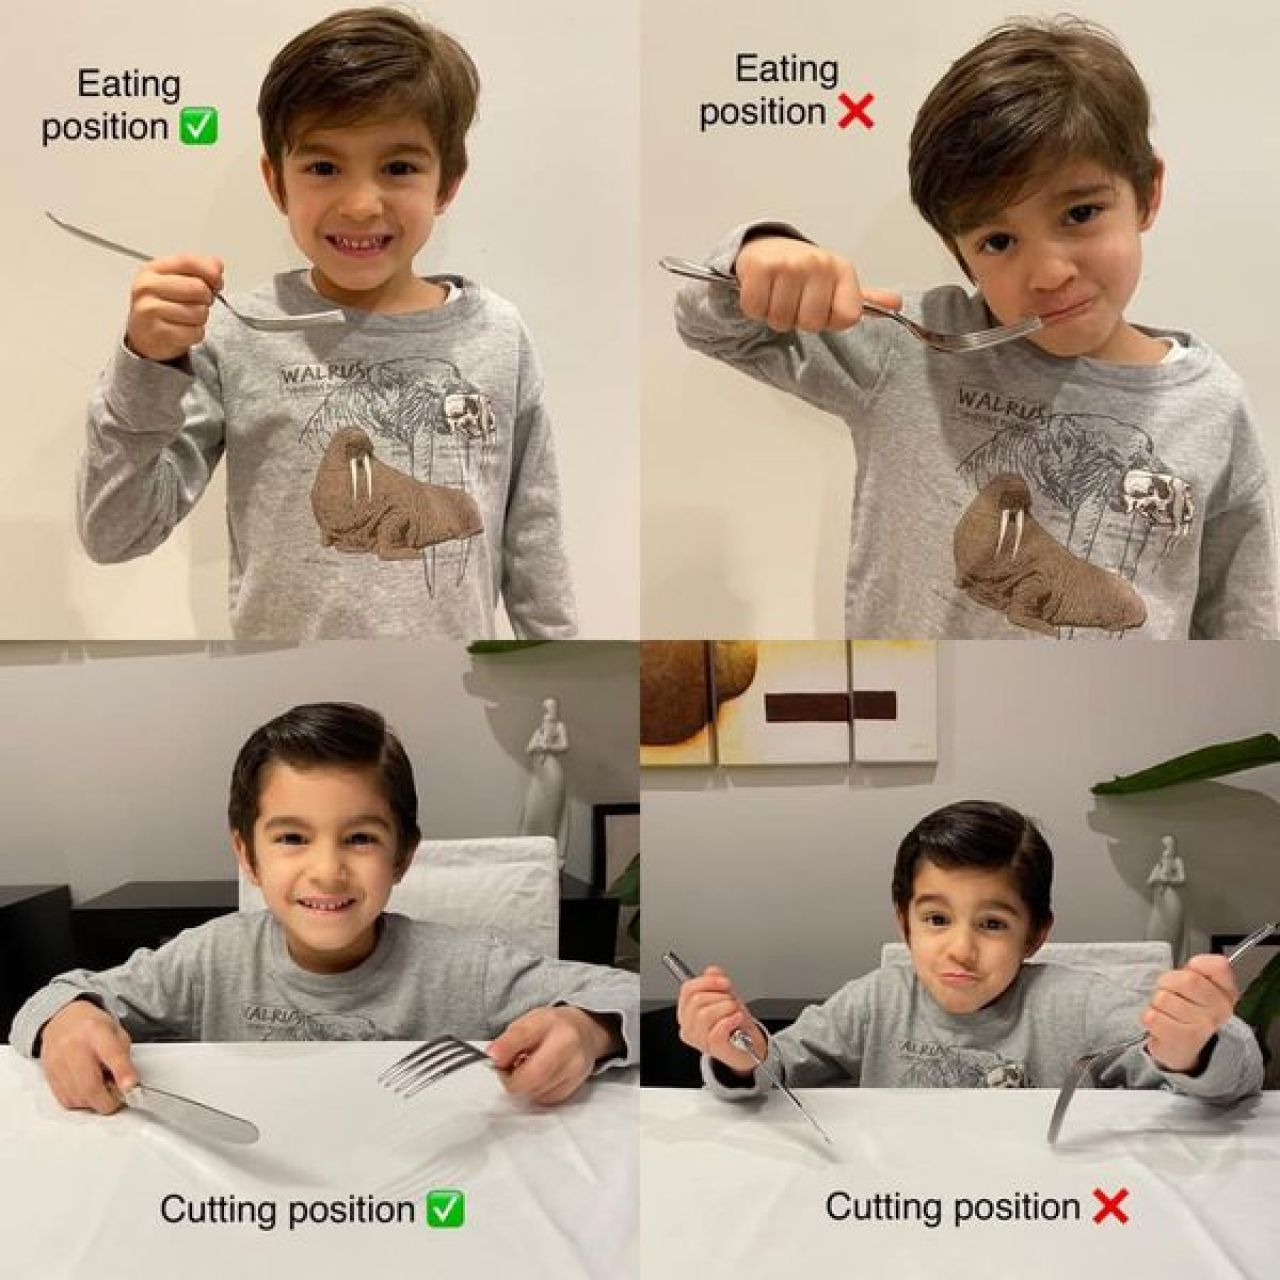 A young, brunette boy in a gray shirt with a walrus on it demonstrates proper and improper eating positions and cutting positions with cutlery